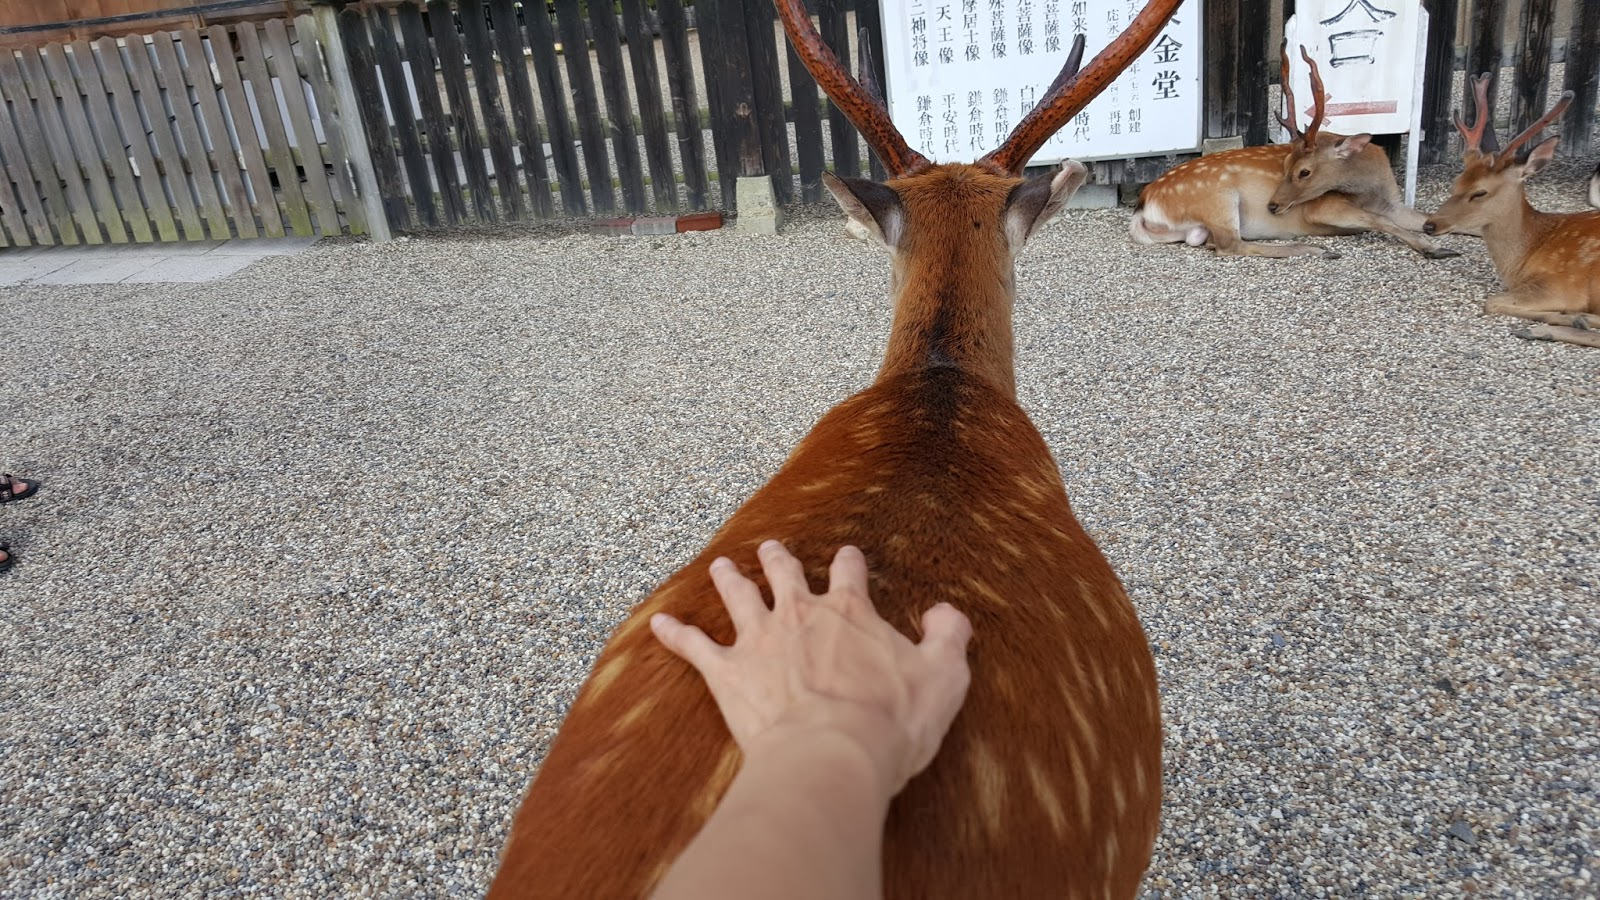 HANGING OUT WITH MY DEER FRIENDS @ NARA PARK (A PHOTO DIARY)